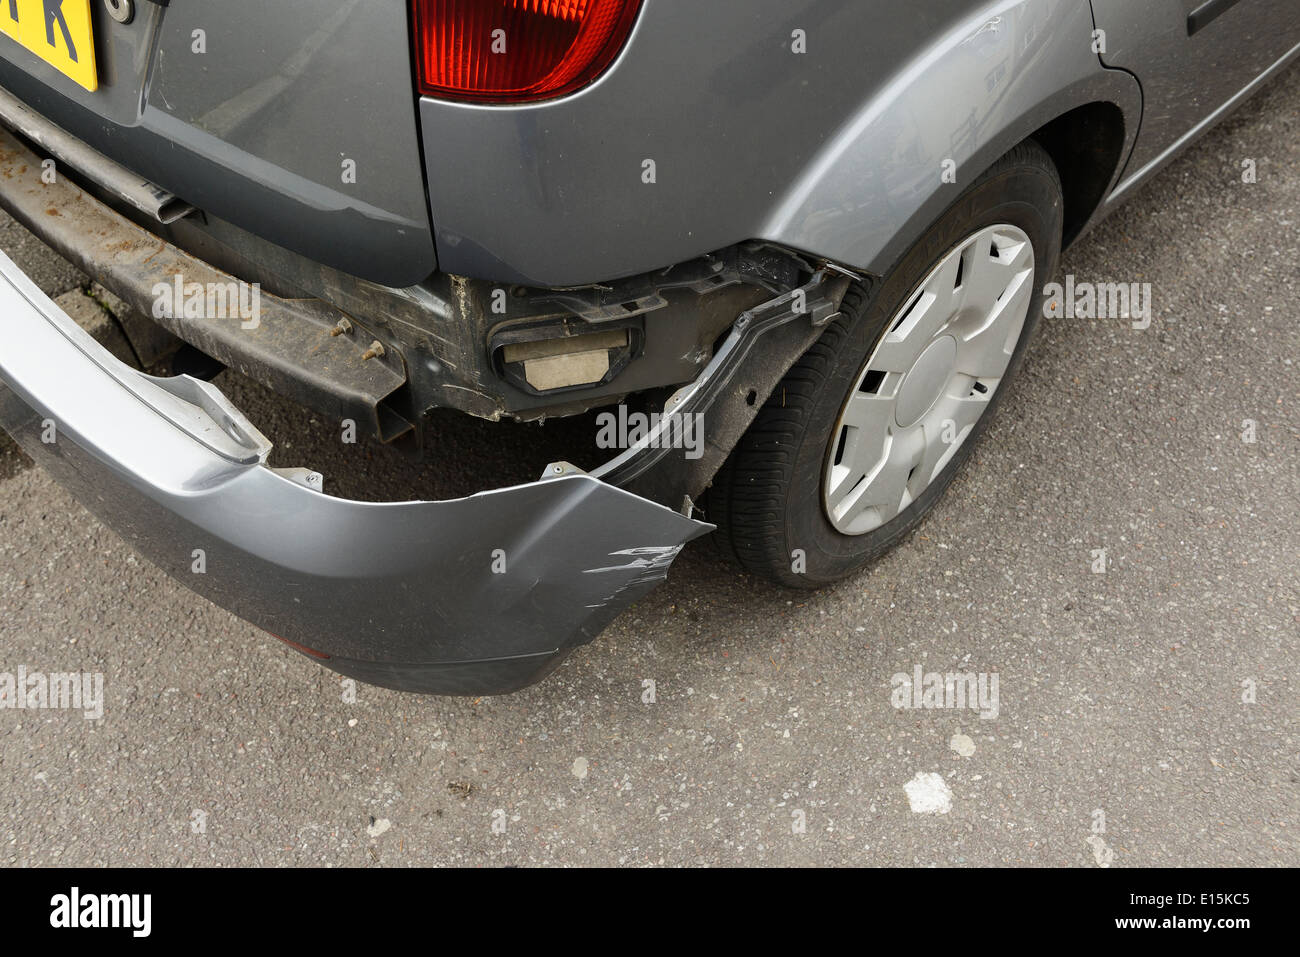 Shopping For Car Insurance After An Accident